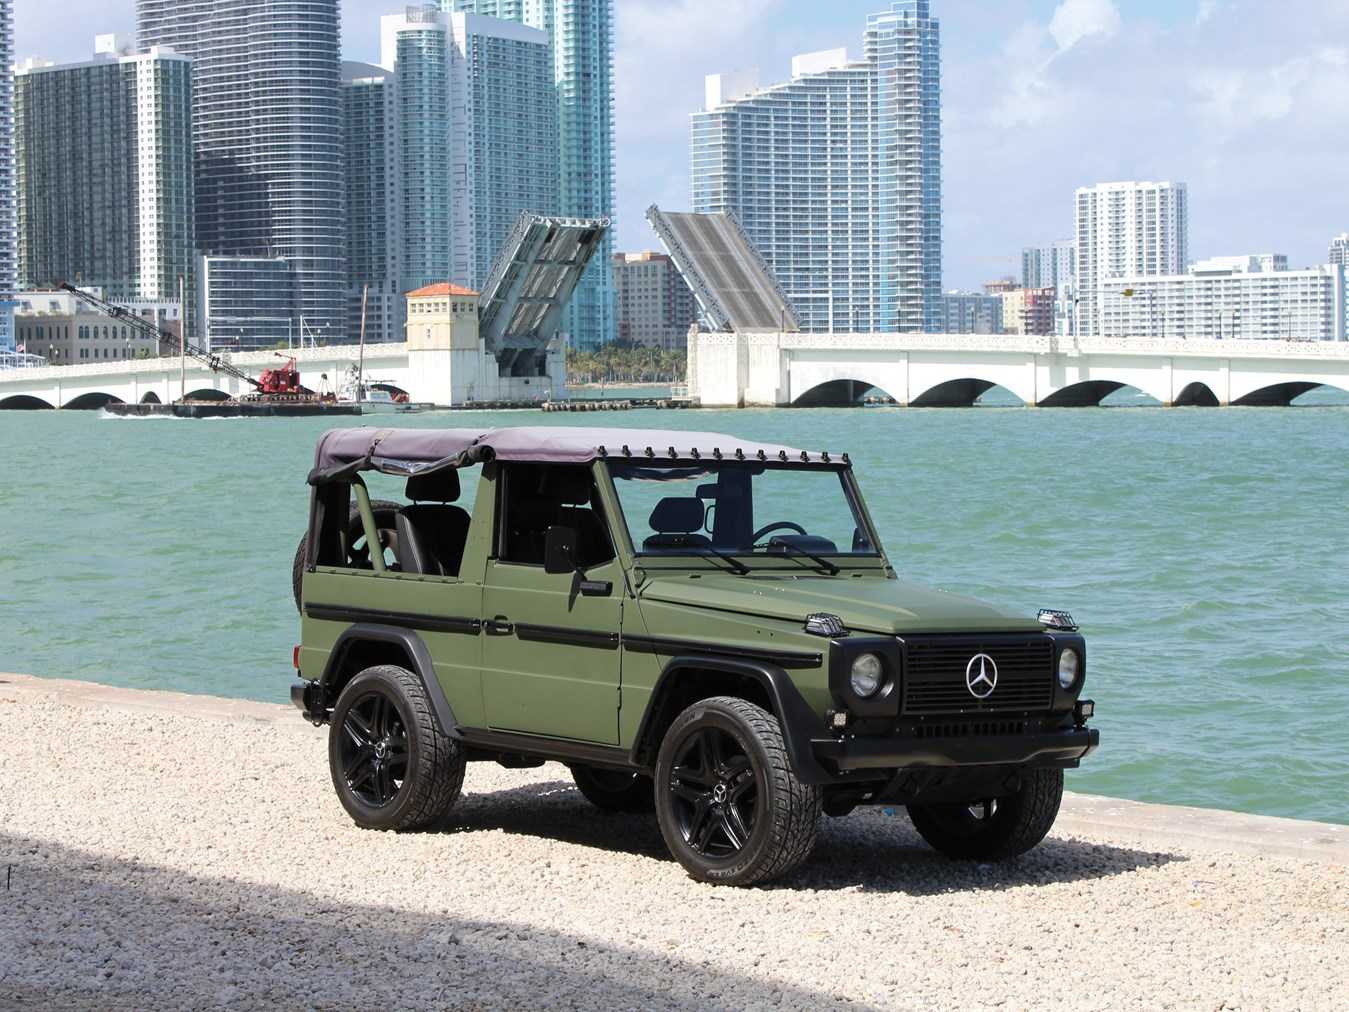 The Mercedes G-wagen is a rugged, head-turning alternative to the Toyota Land Cruiser thumbnail